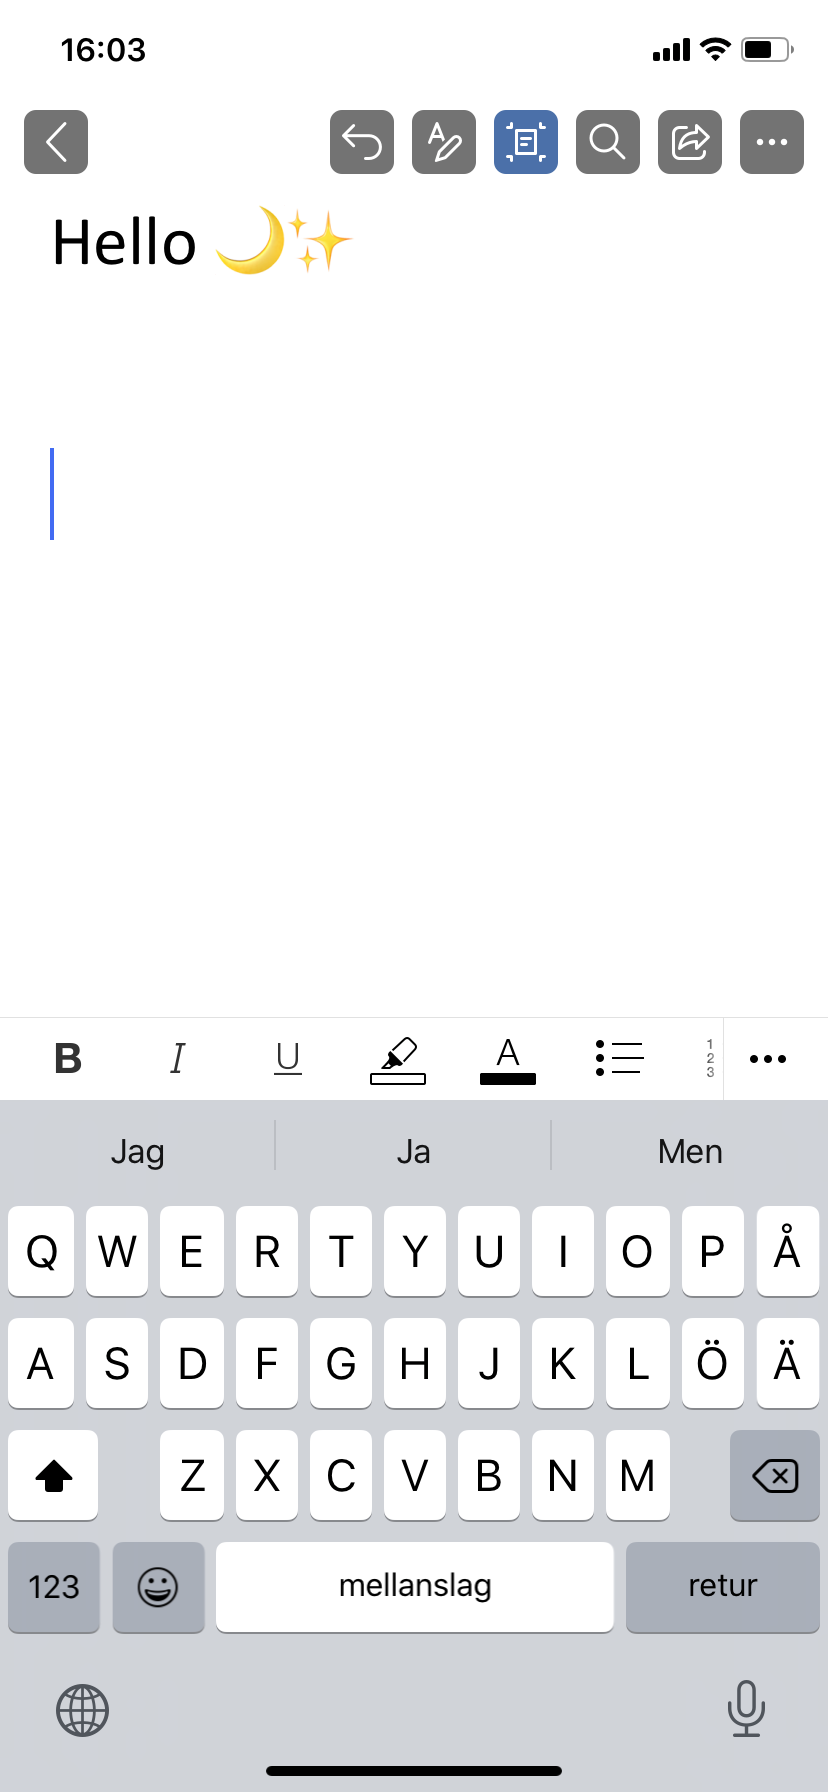 Edit a file in the Office app